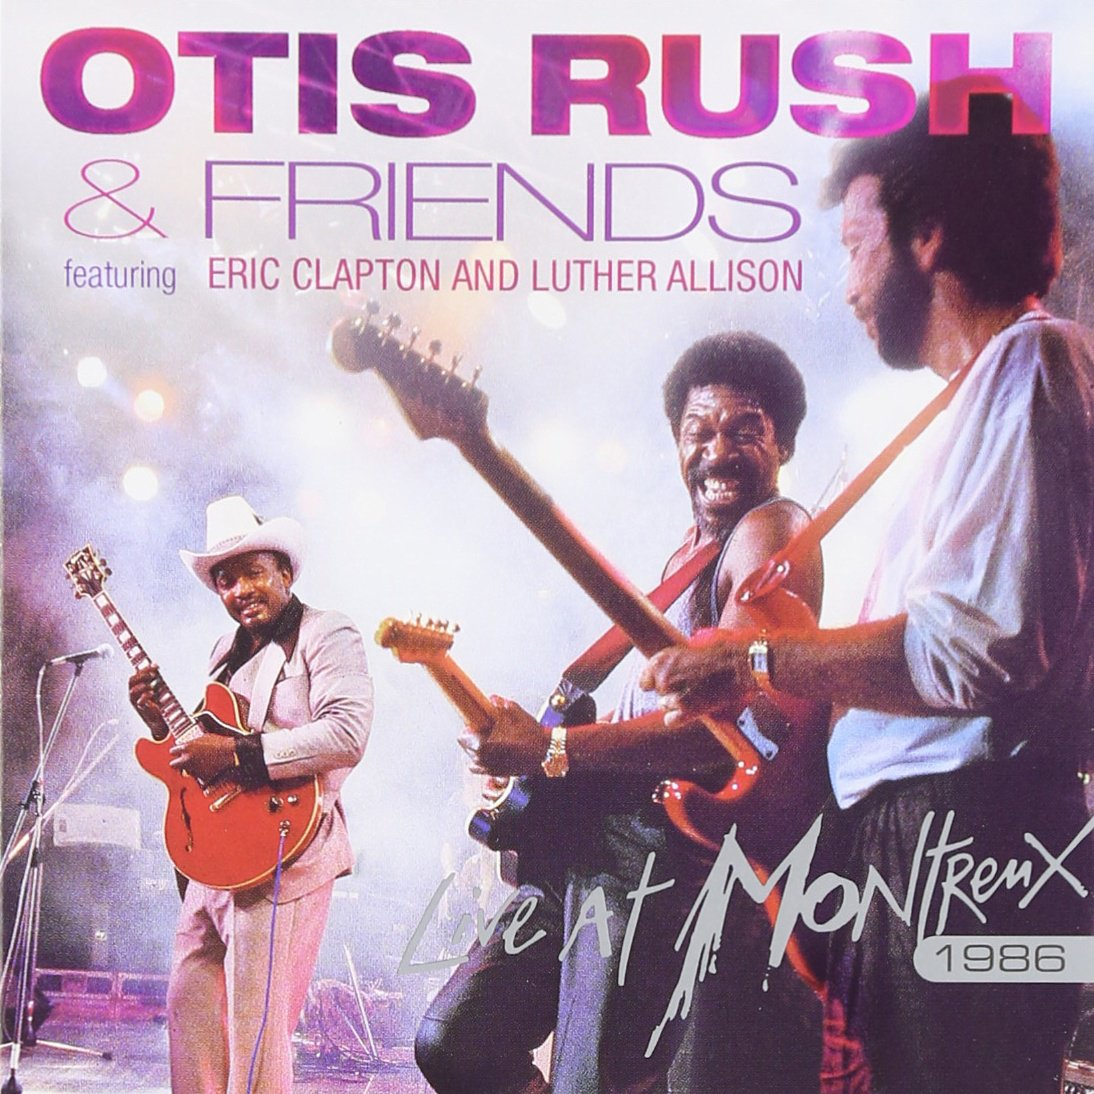 Otis Rush - Live at Montreux 1986 by CD